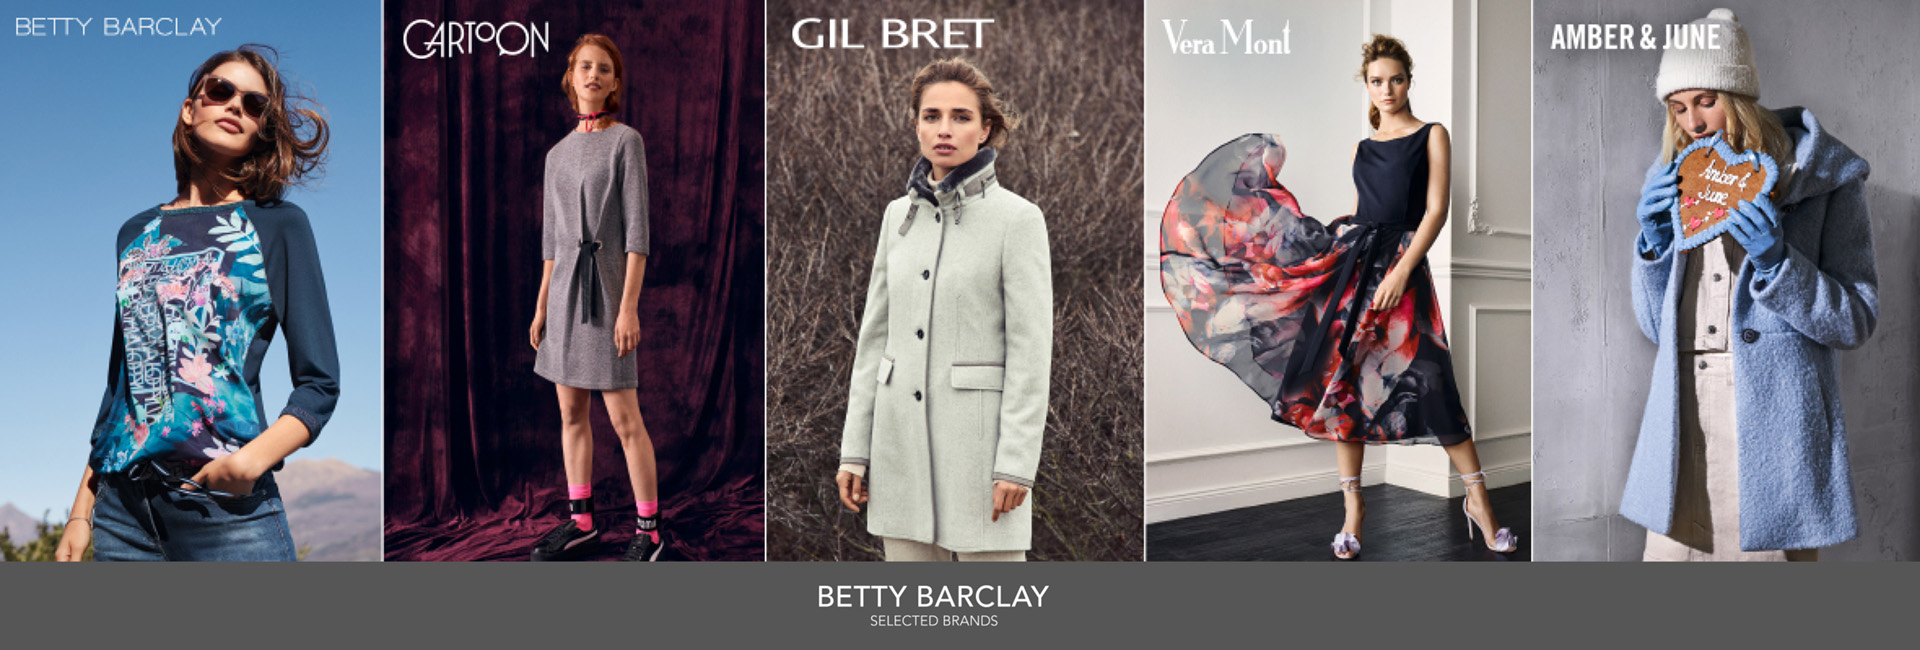 Betty Barclay Selected Brands Outlet Wadgassen 2019